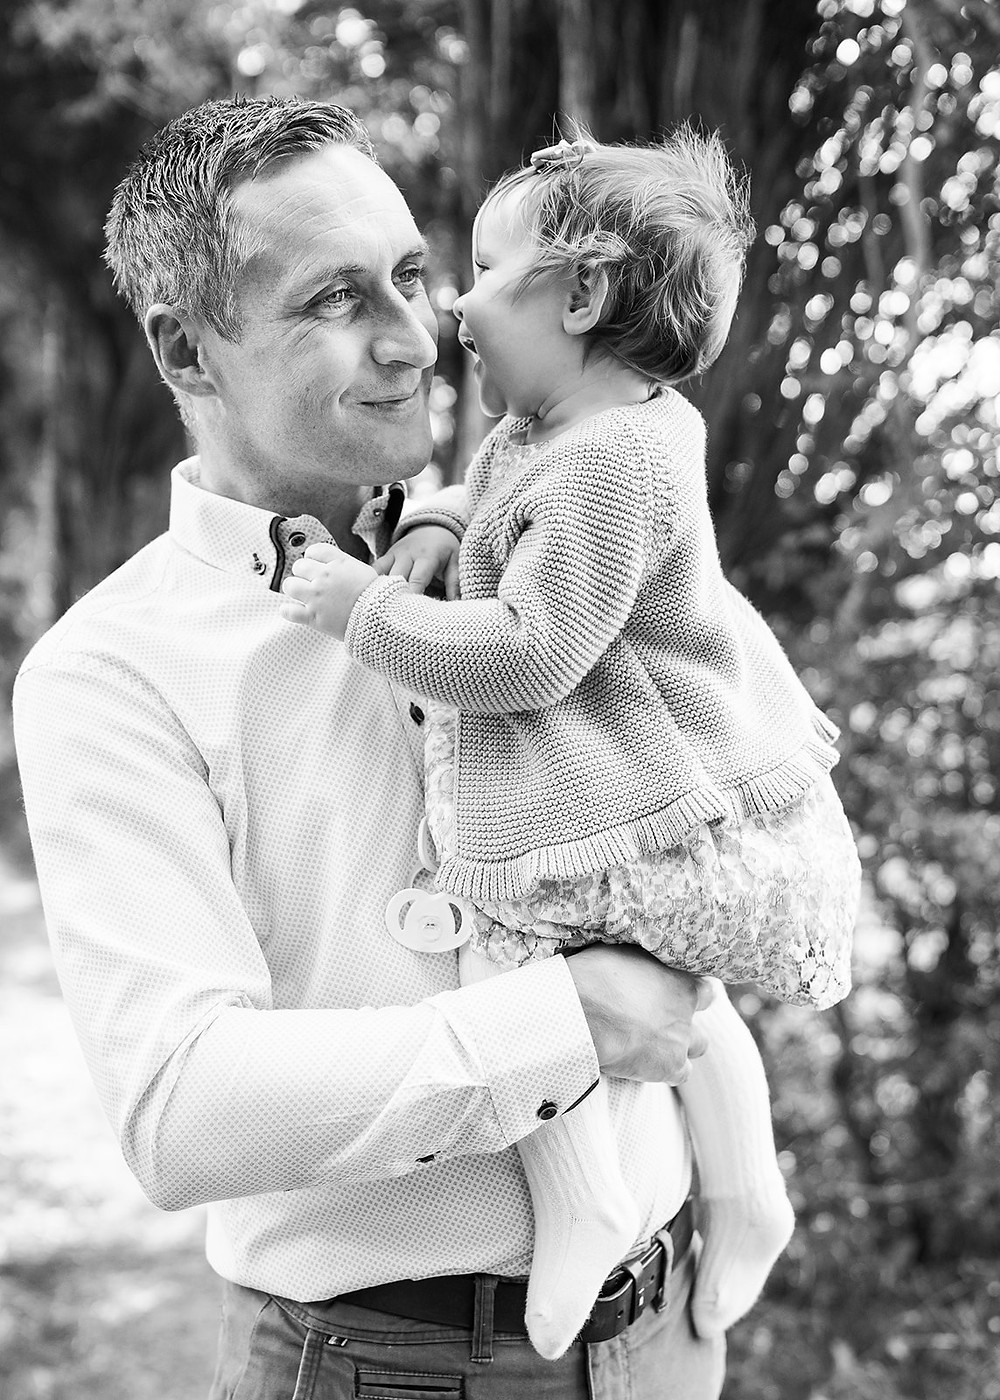 baby whispering in her dads ear. Father and daughter photoshoot, cavan